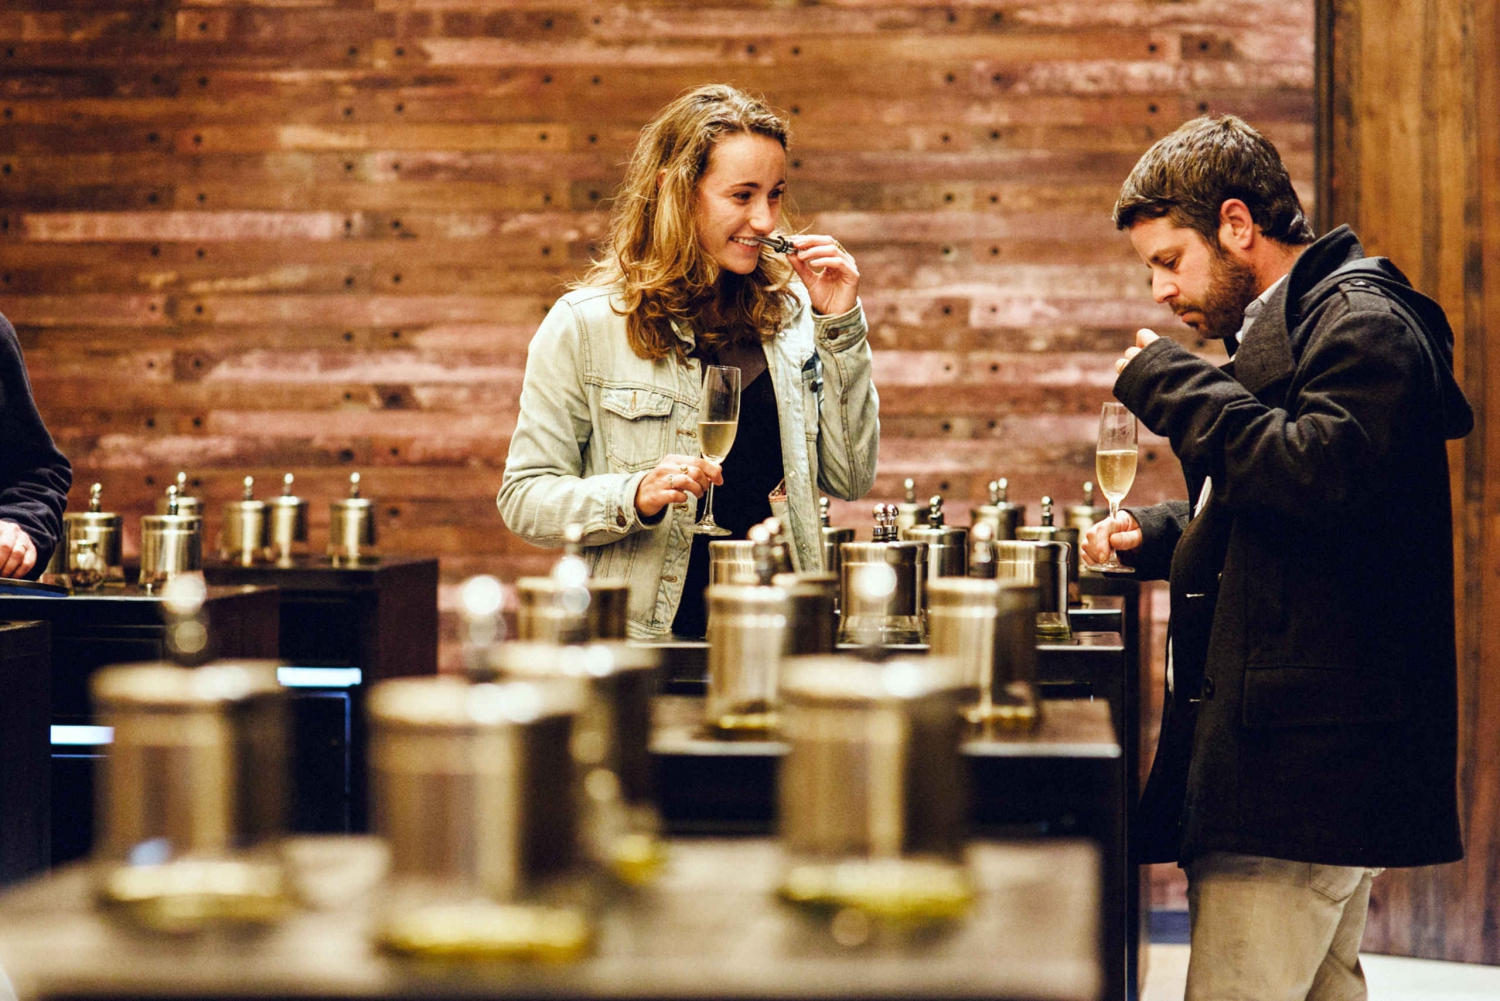 Santiago: Wine Tasting Course with Sommeliers and Winemakers